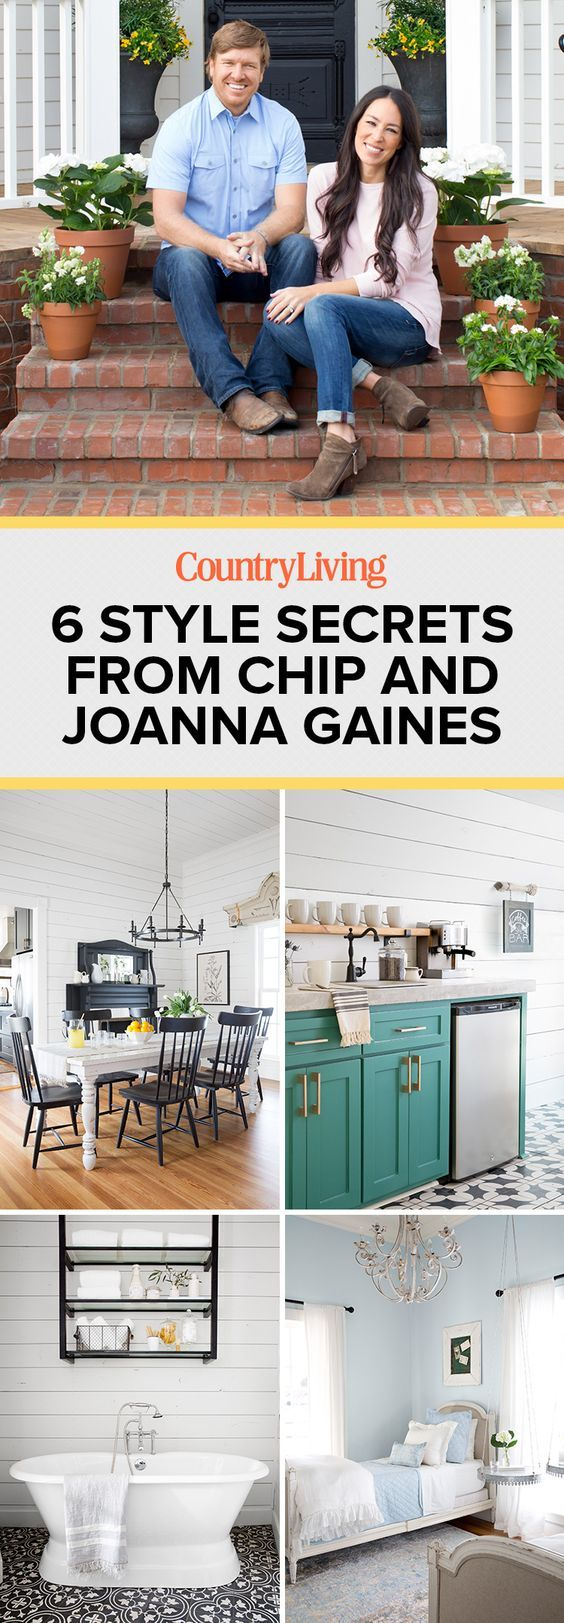 Les 24 meilleures images du tableau chip and joanna sur for Where is chip and joanna gaines bed and breakfast located